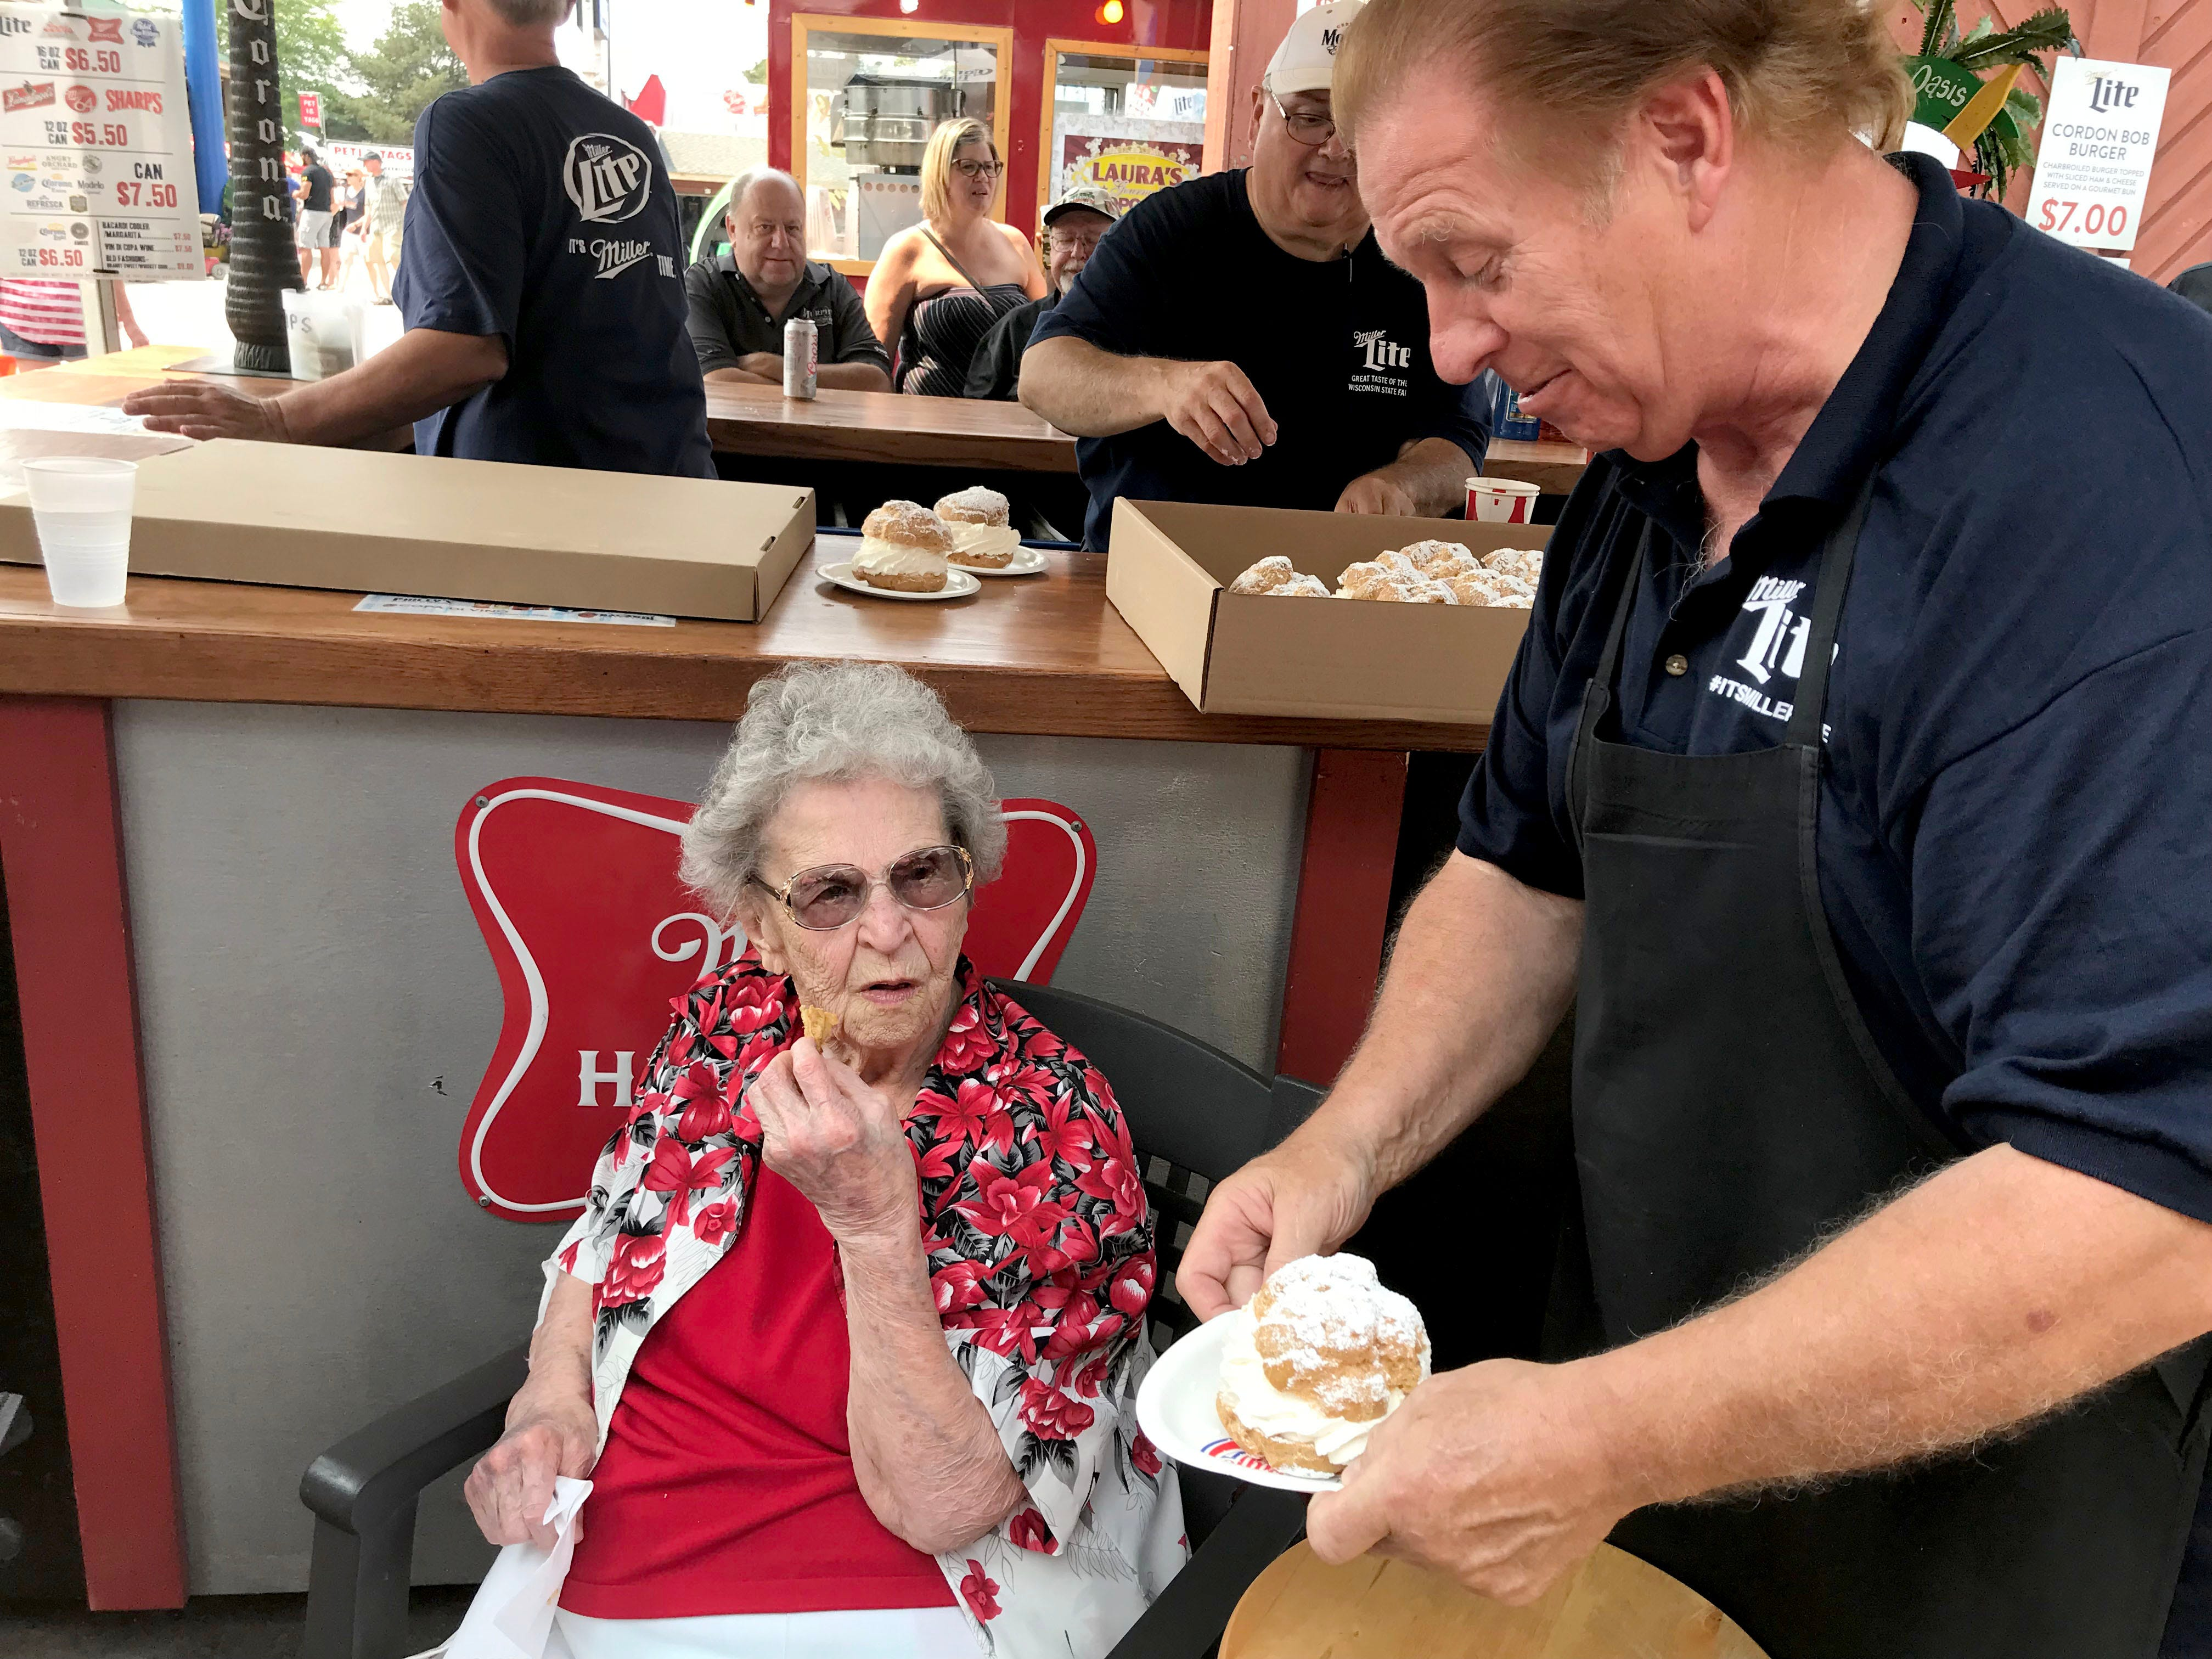 Catherine Krause's son Robert hands her a cream puff at his restaurant, Robert's, at Wisconsin State Fair Sunday afternoon.